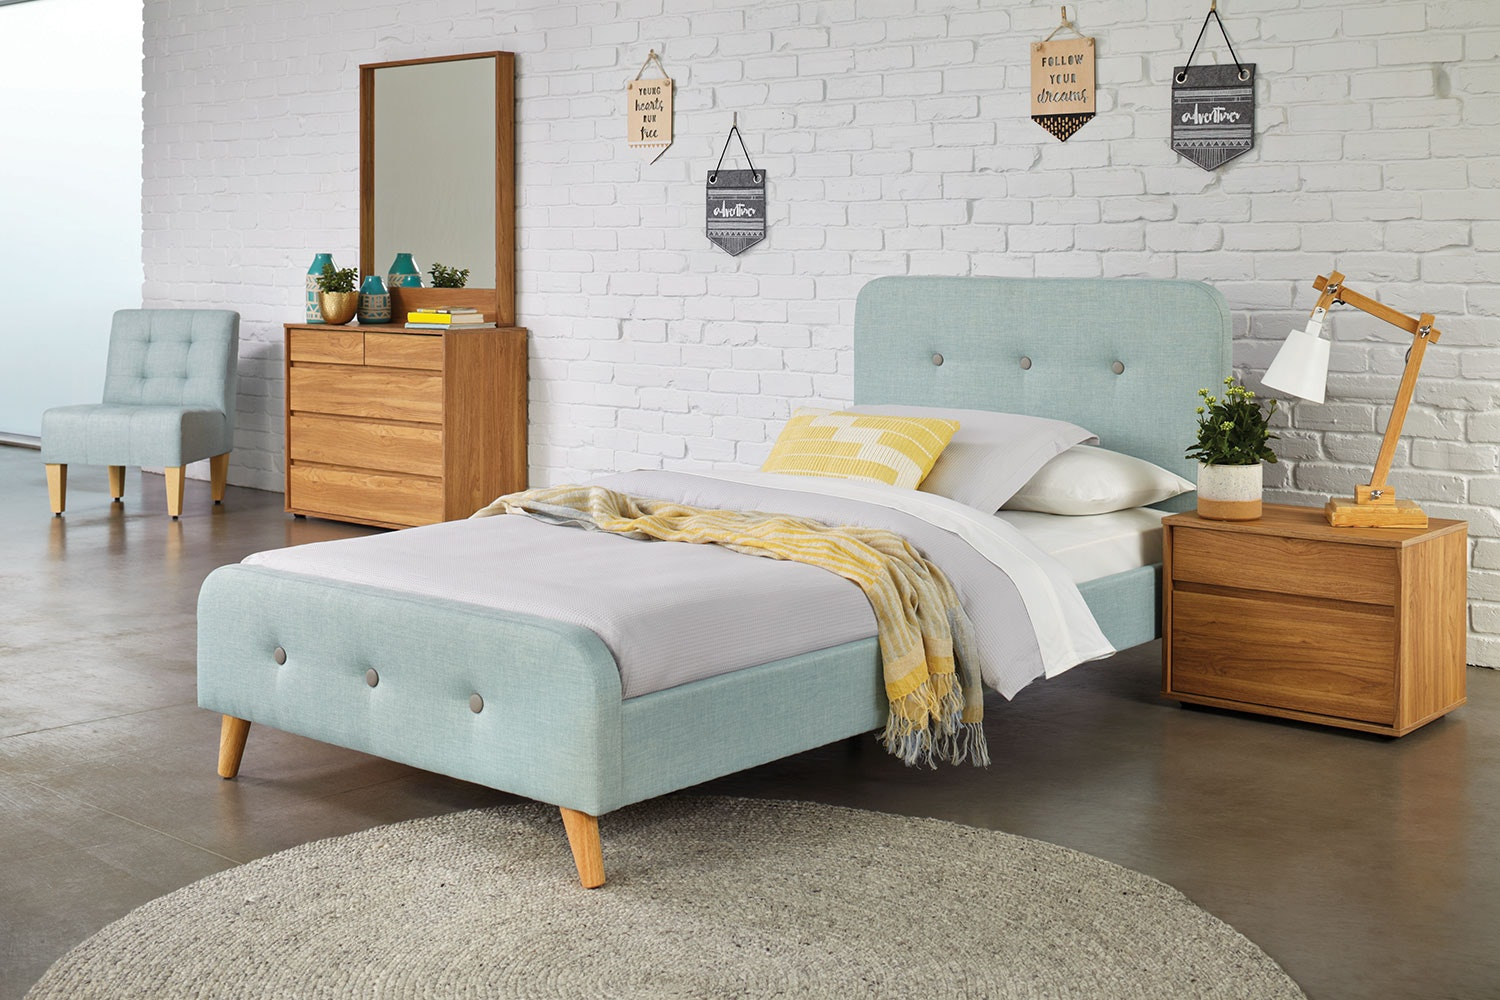 Blue Calypso King Single Bed Frame By Nero Furniture ...